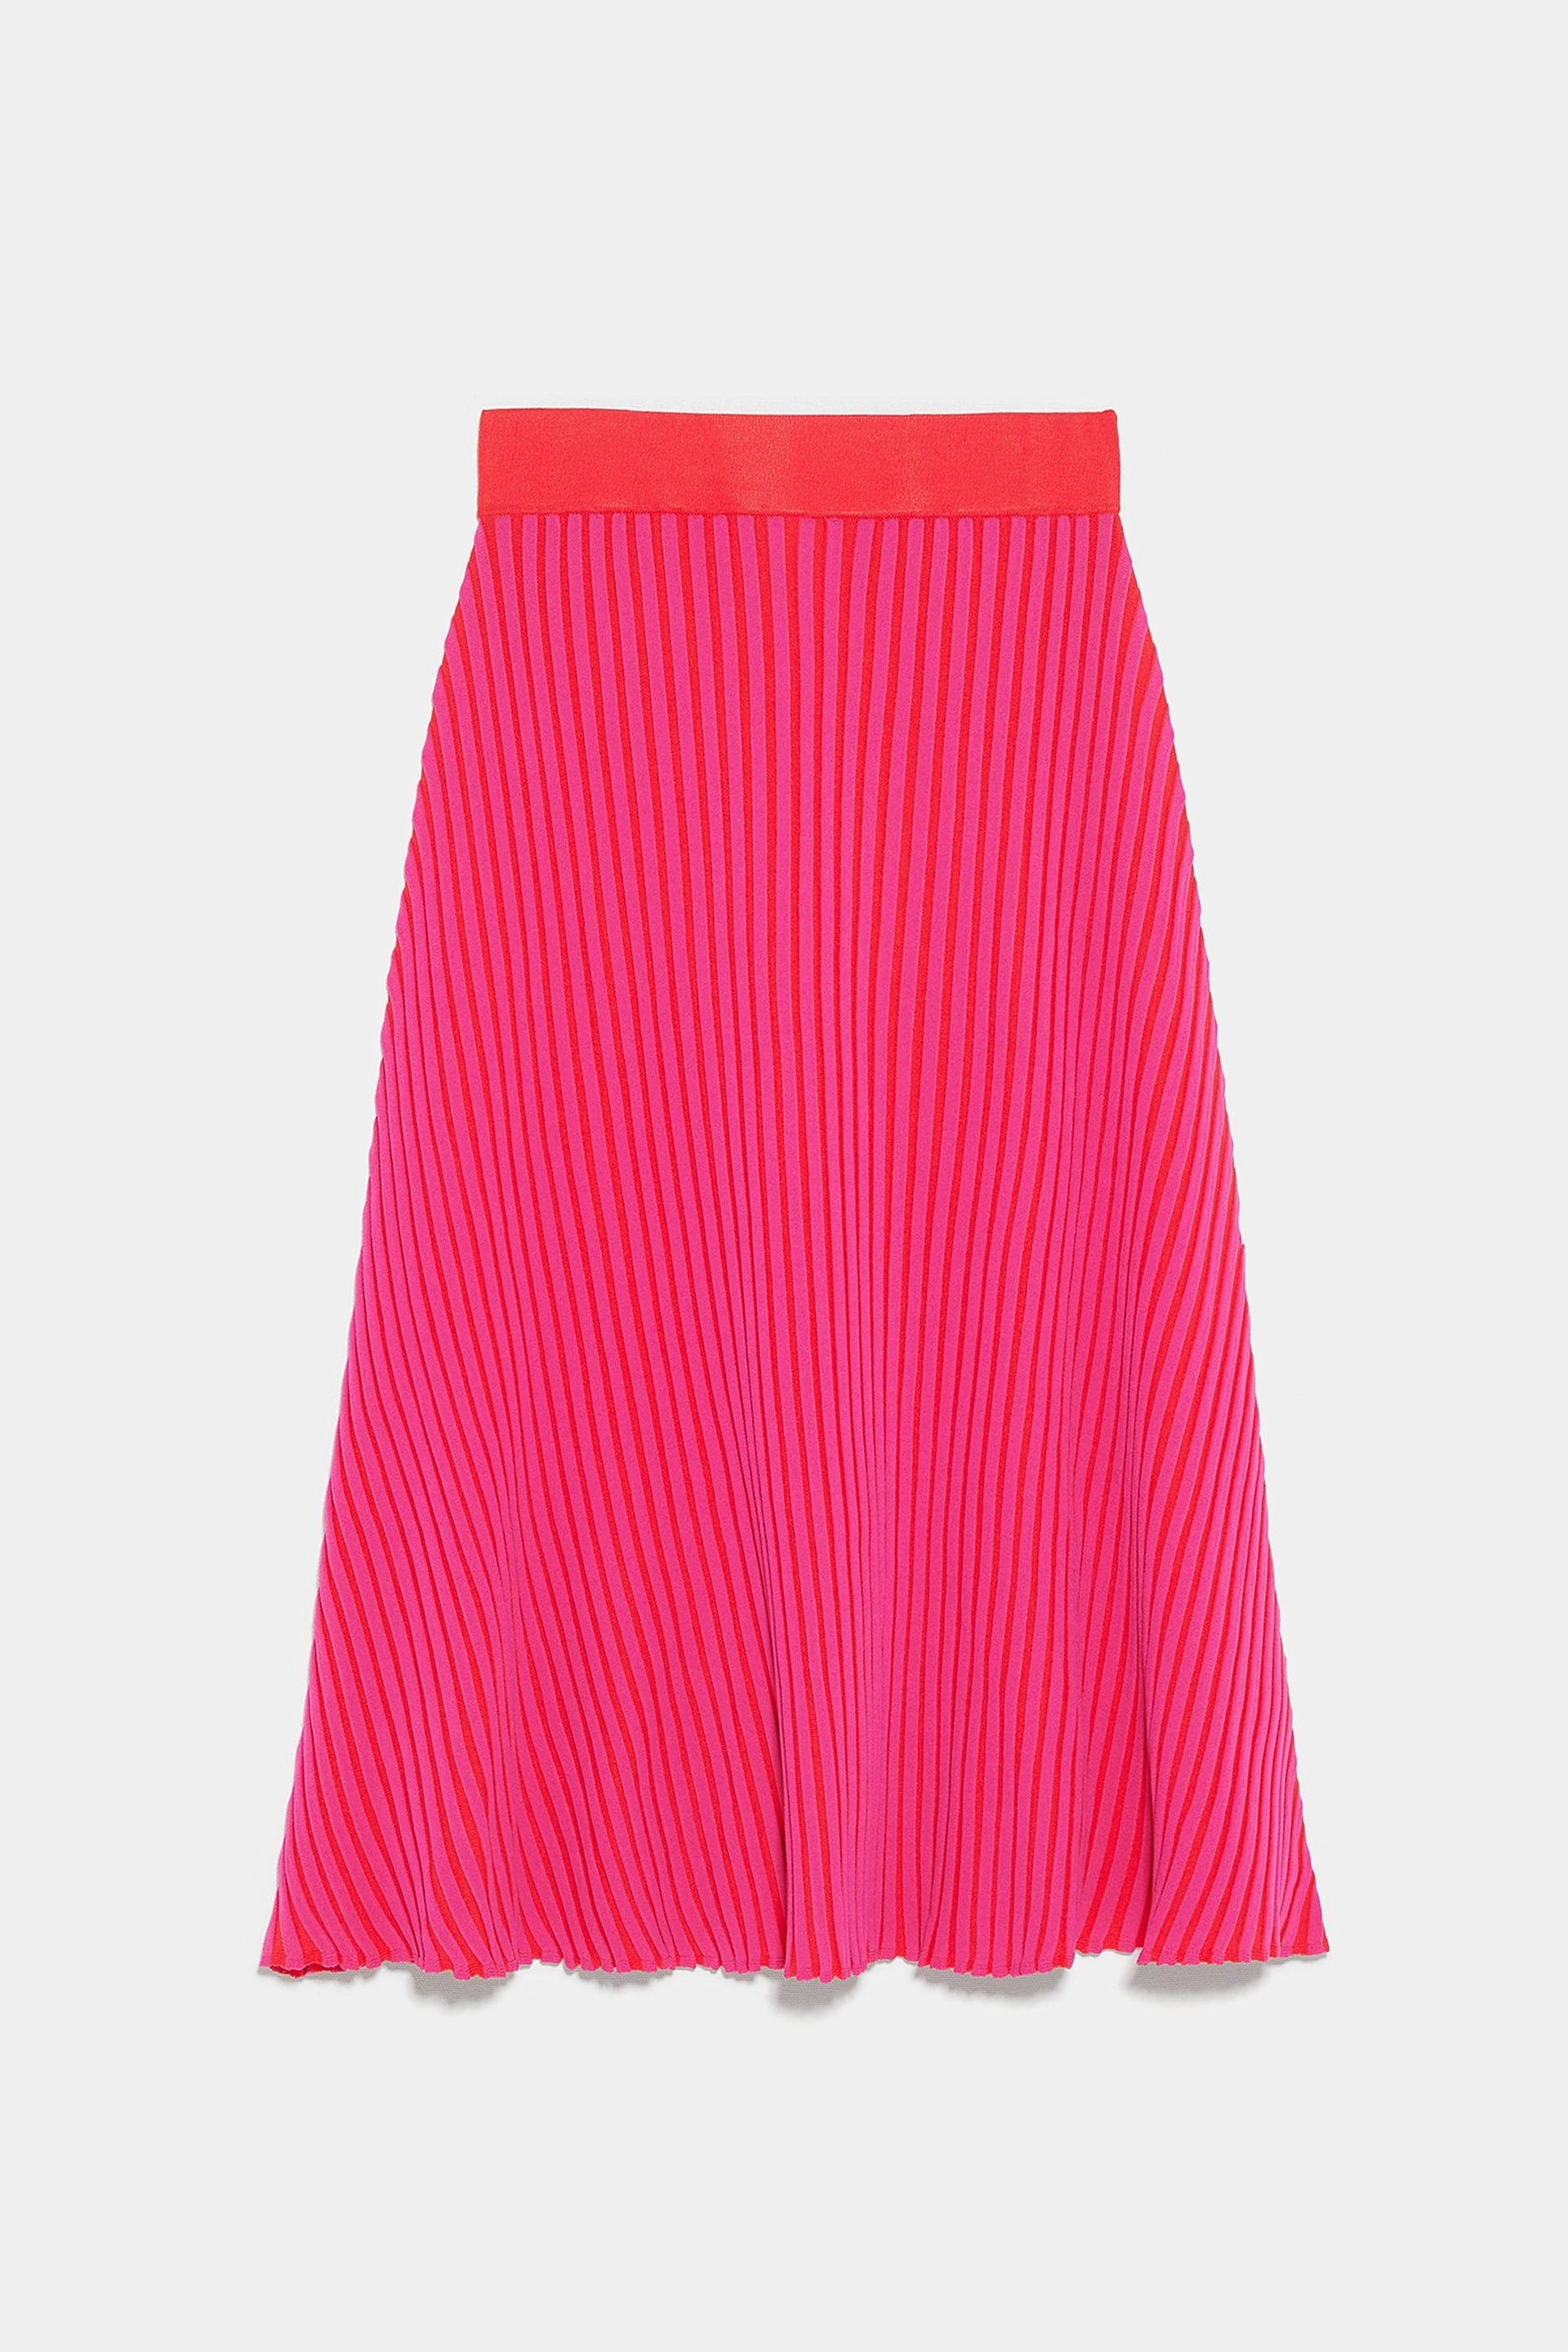 1755d7576 Two-tone knit skirt in 2019 | so fly | Knit skirt, Skirts, Two tones